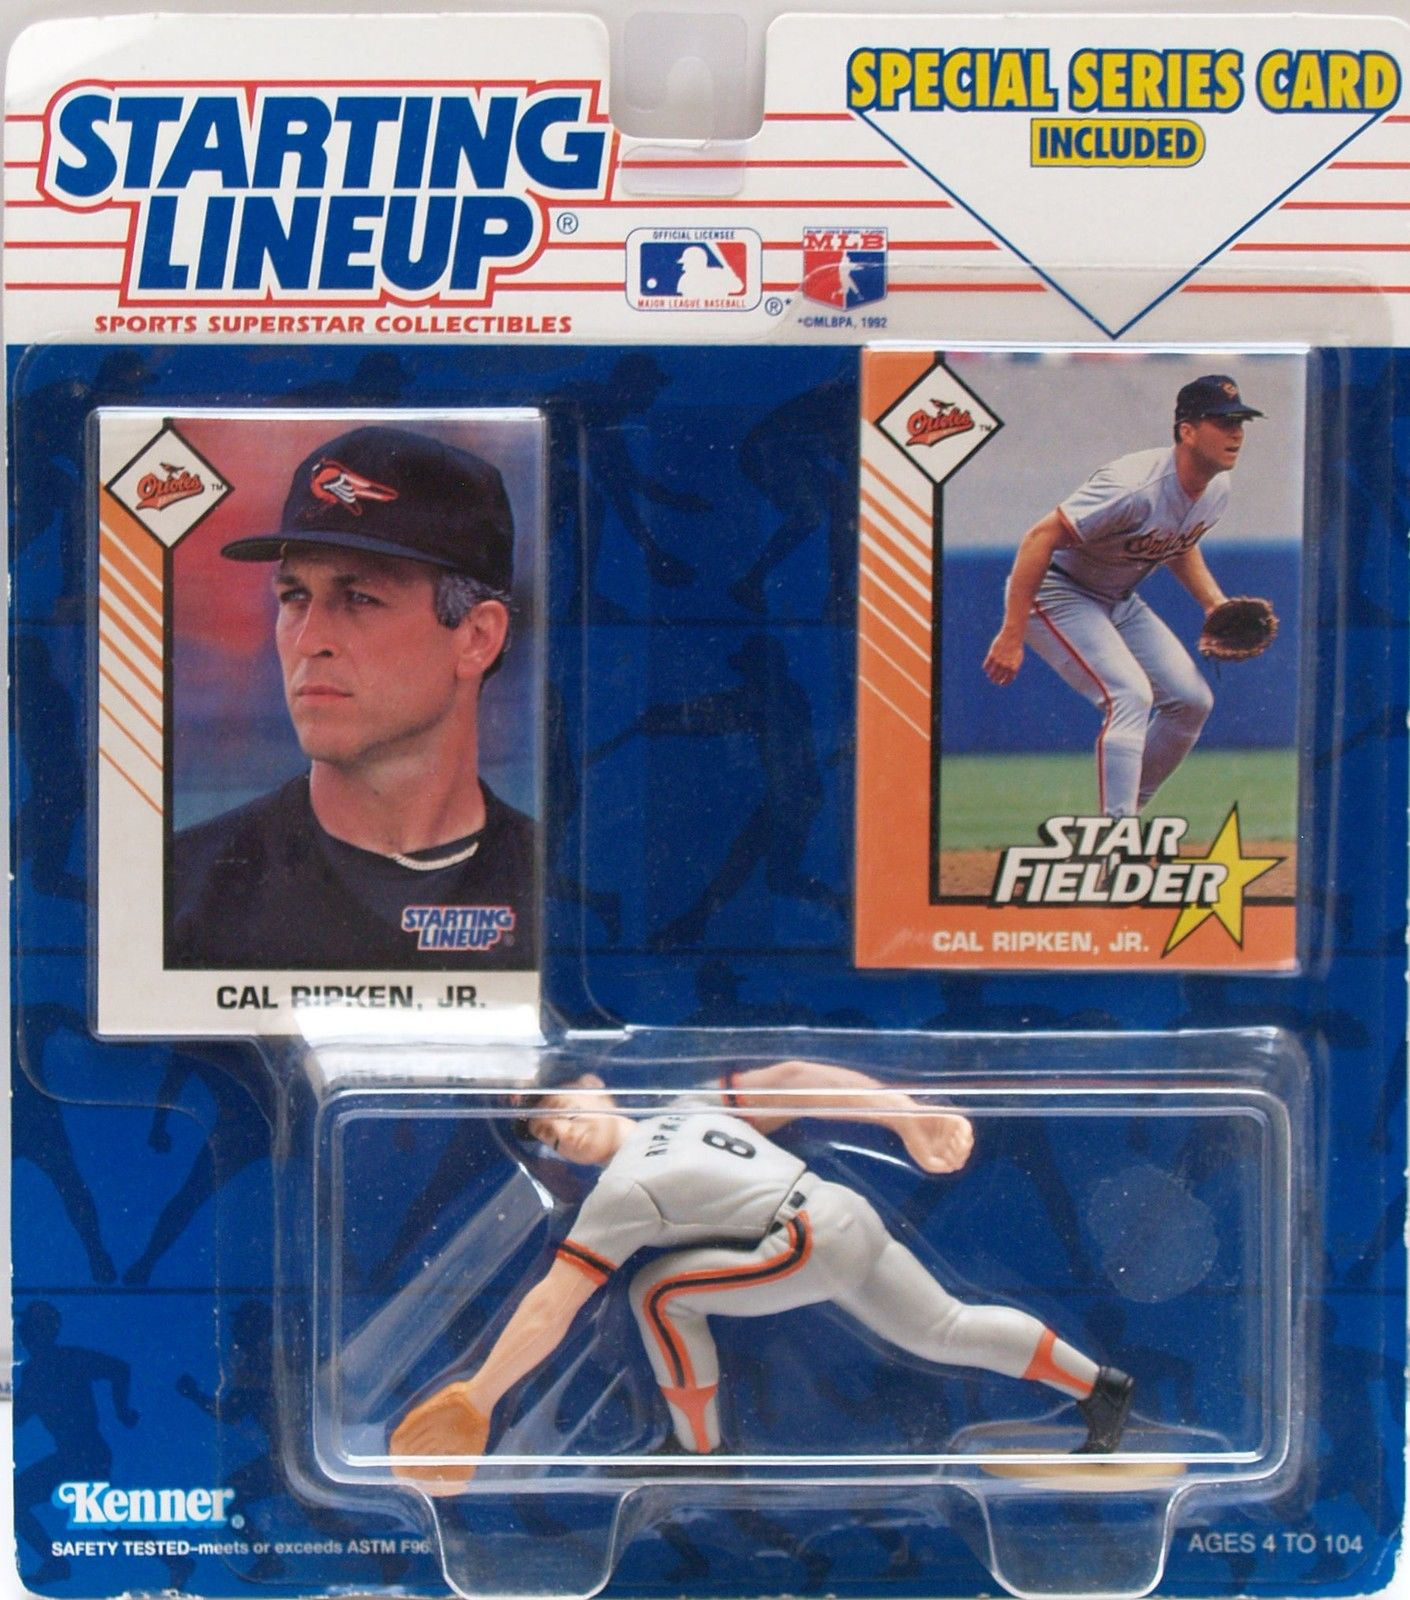 STARTING LINEUP - CAL RIPKEN, JR 1993 - BALTIMORE ORIOLES STAR FIELDER